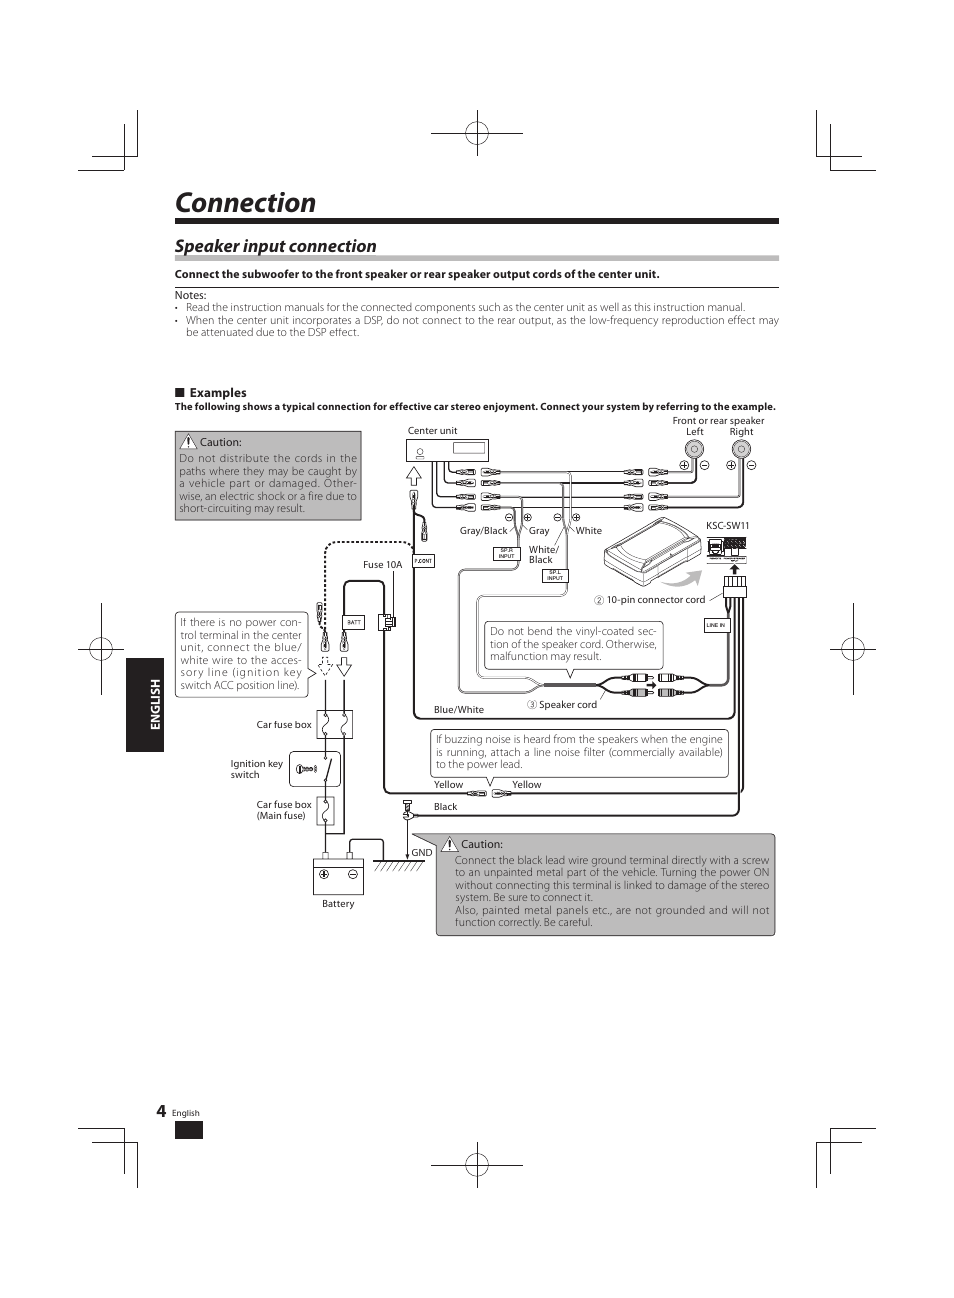 Connection Speaker Input P Kenwood Ksc Sw11 User Function Of Car Fuse Box Manual Page 4 9